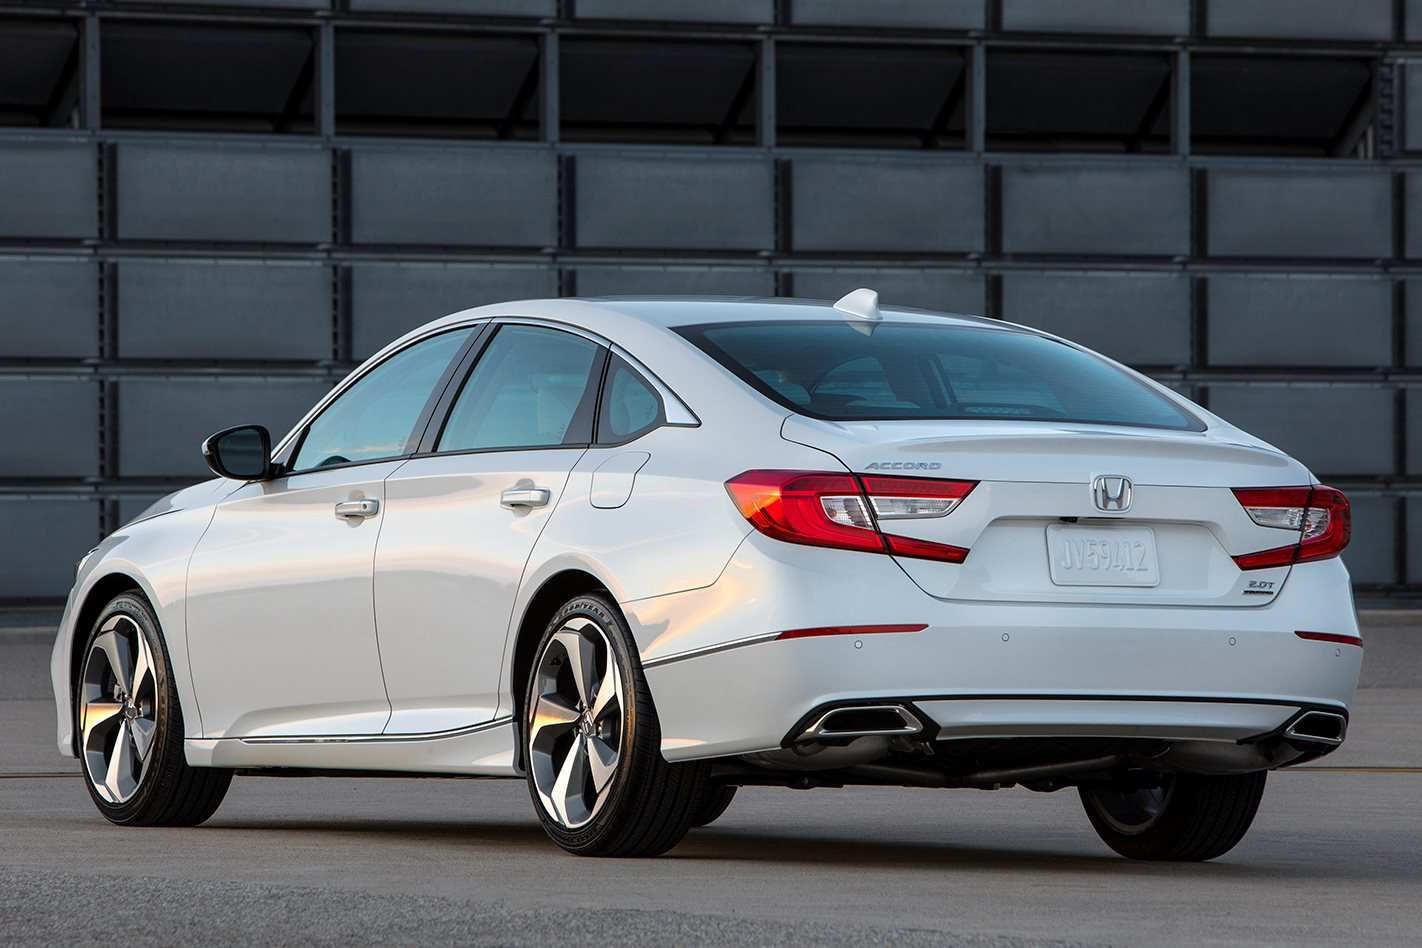 73 The Best 2020 Honda Accord Research New